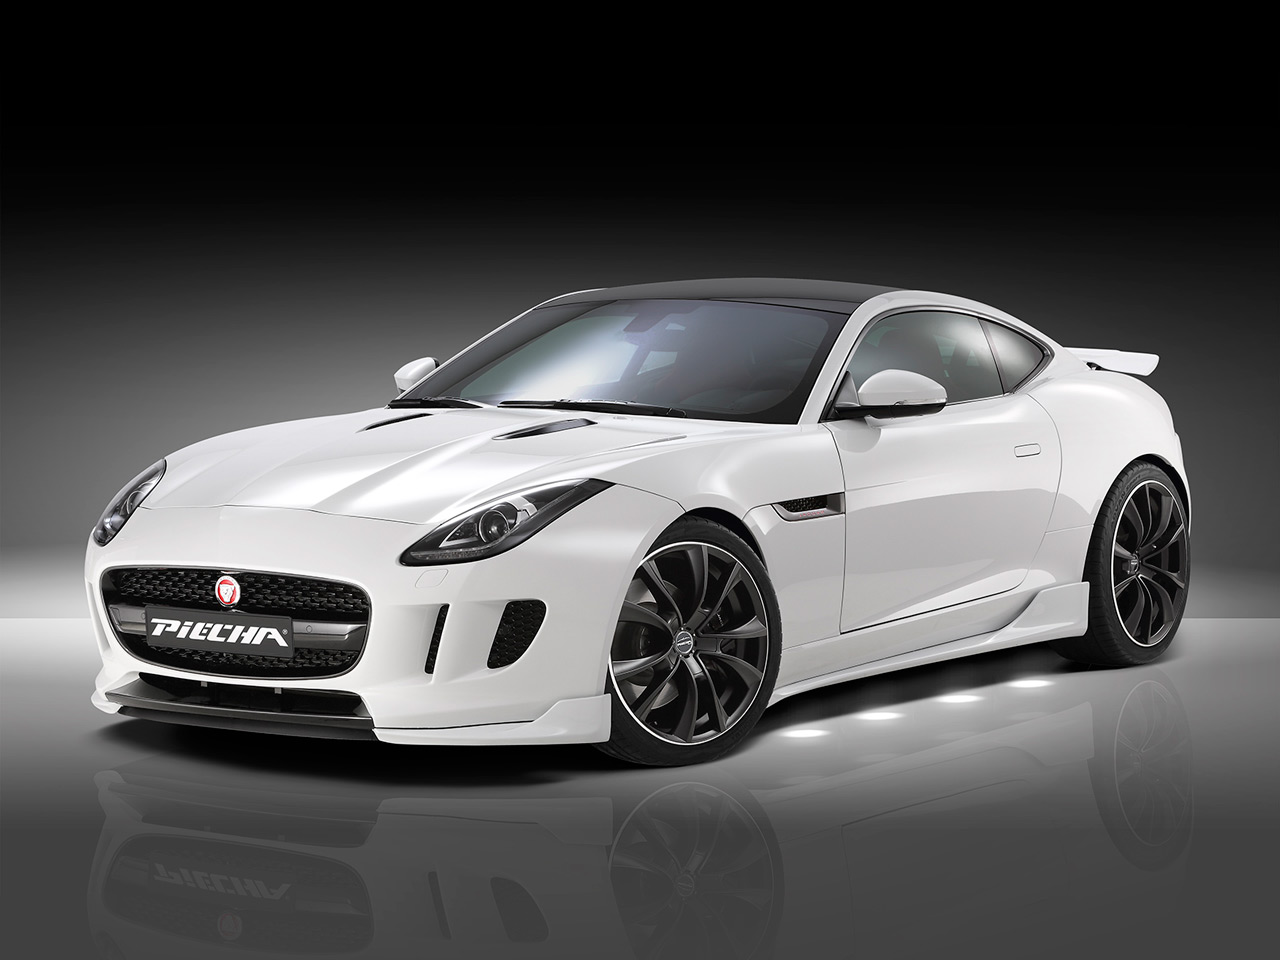 official jaguar f type coupe by piecha design gtspirit. Black Bedroom Furniture Sets. Home Design Ideas